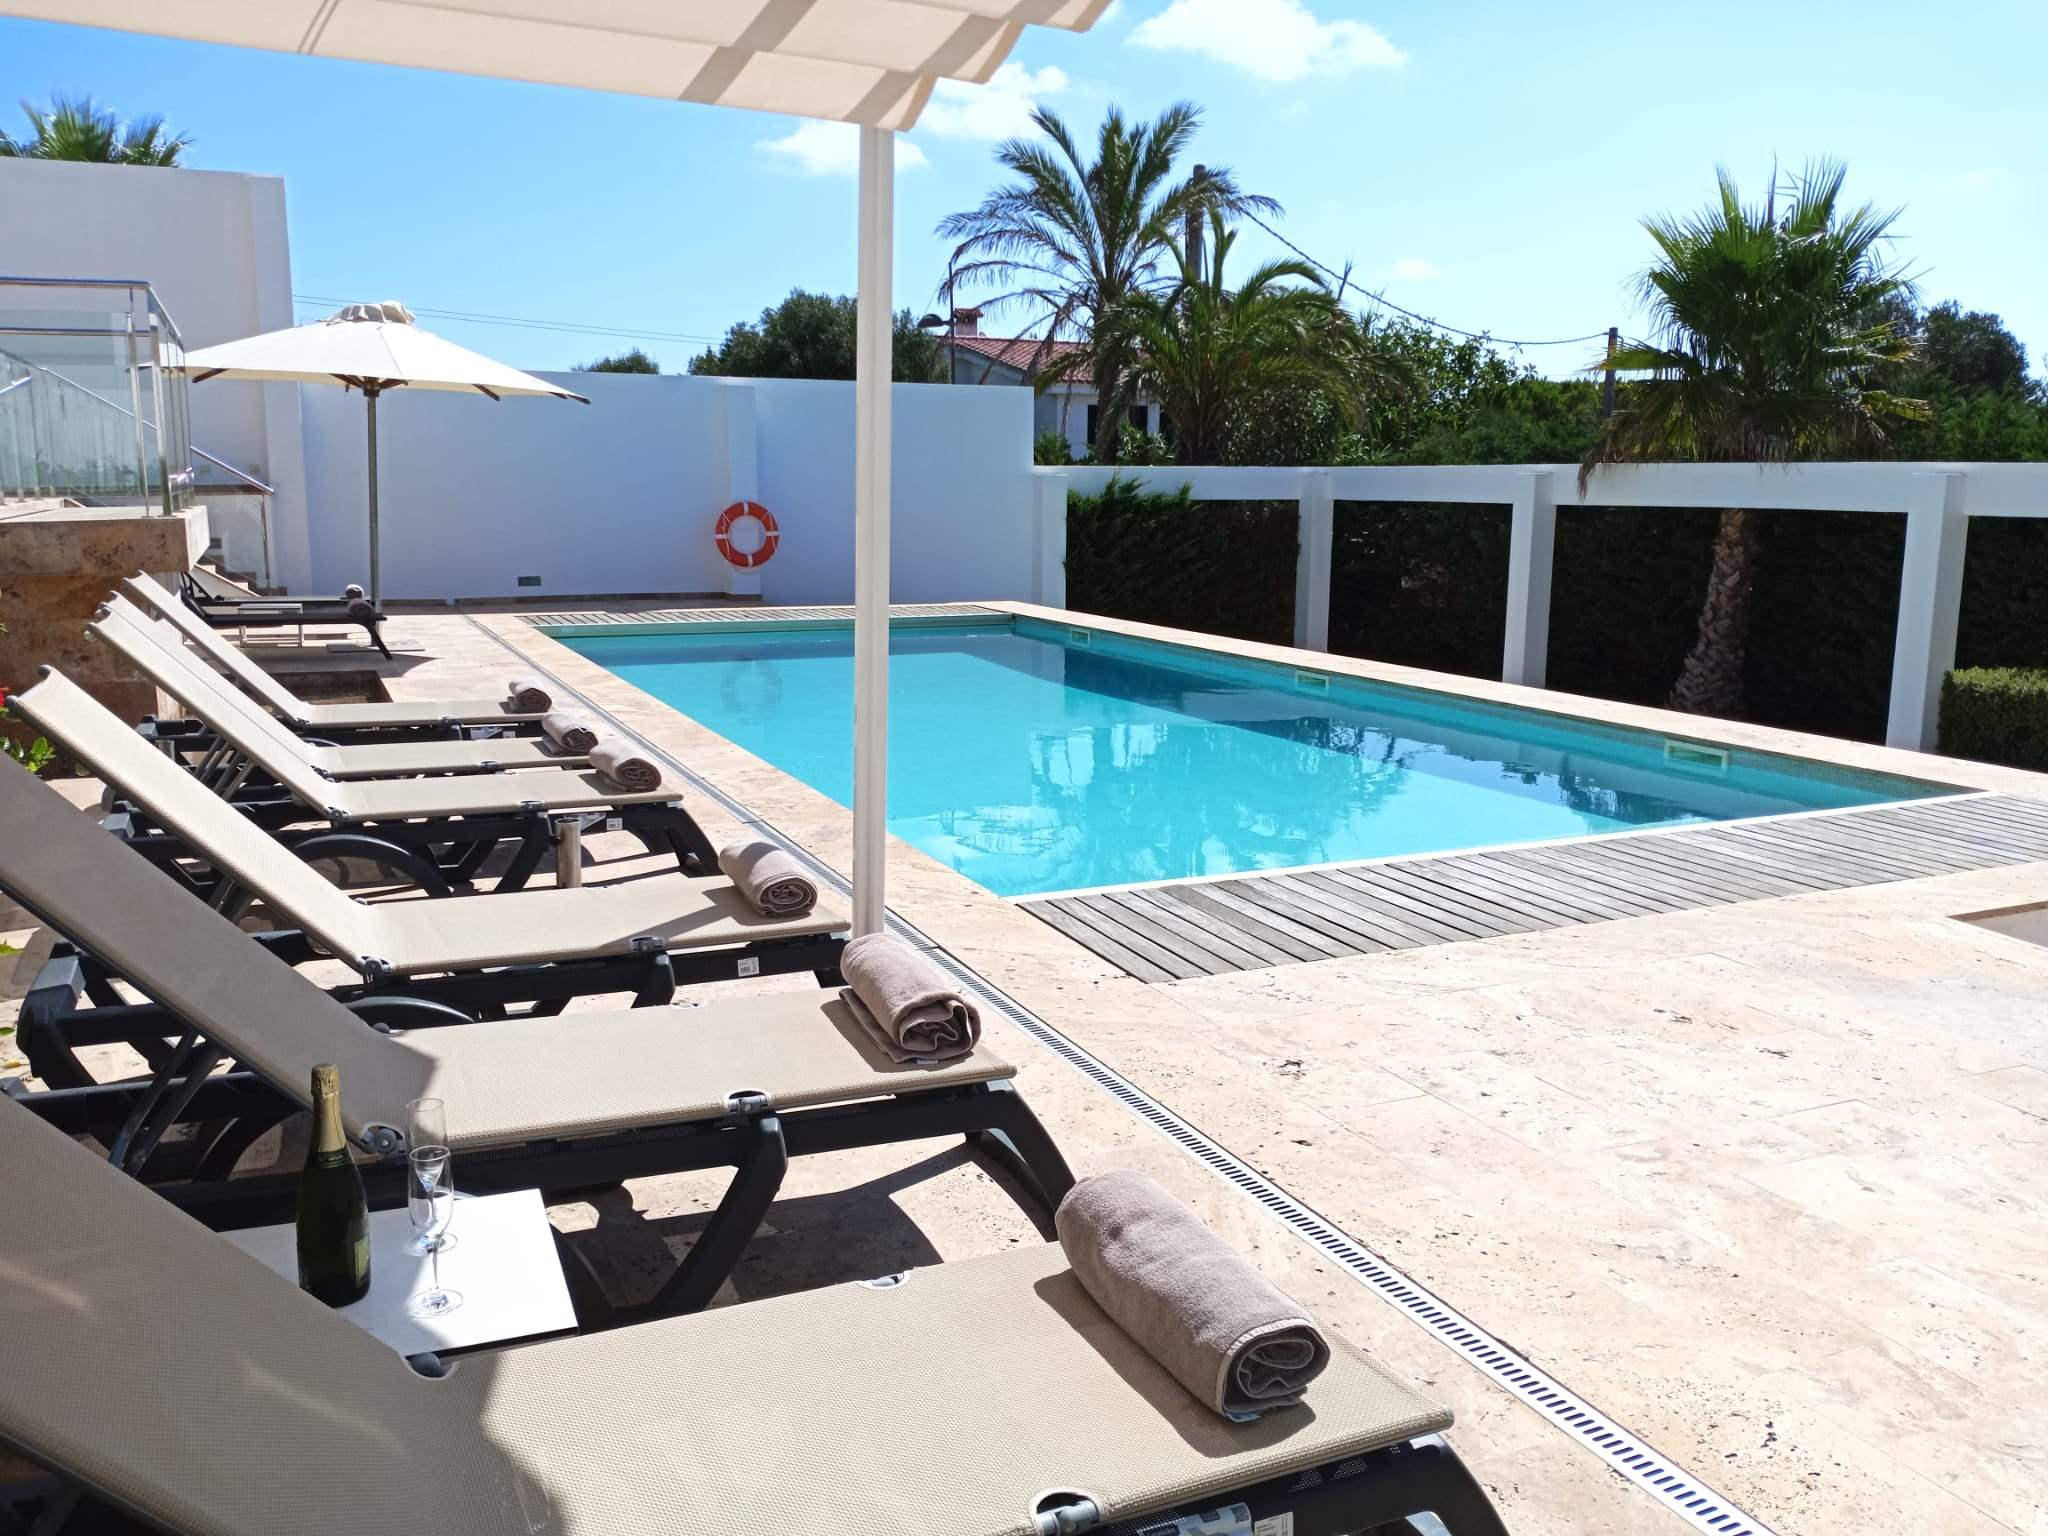 Casa Pitiusa, 4 Bedroom rate, 4 bedroom villa in Mahon, San Luis & South East, Menorca Photo #8